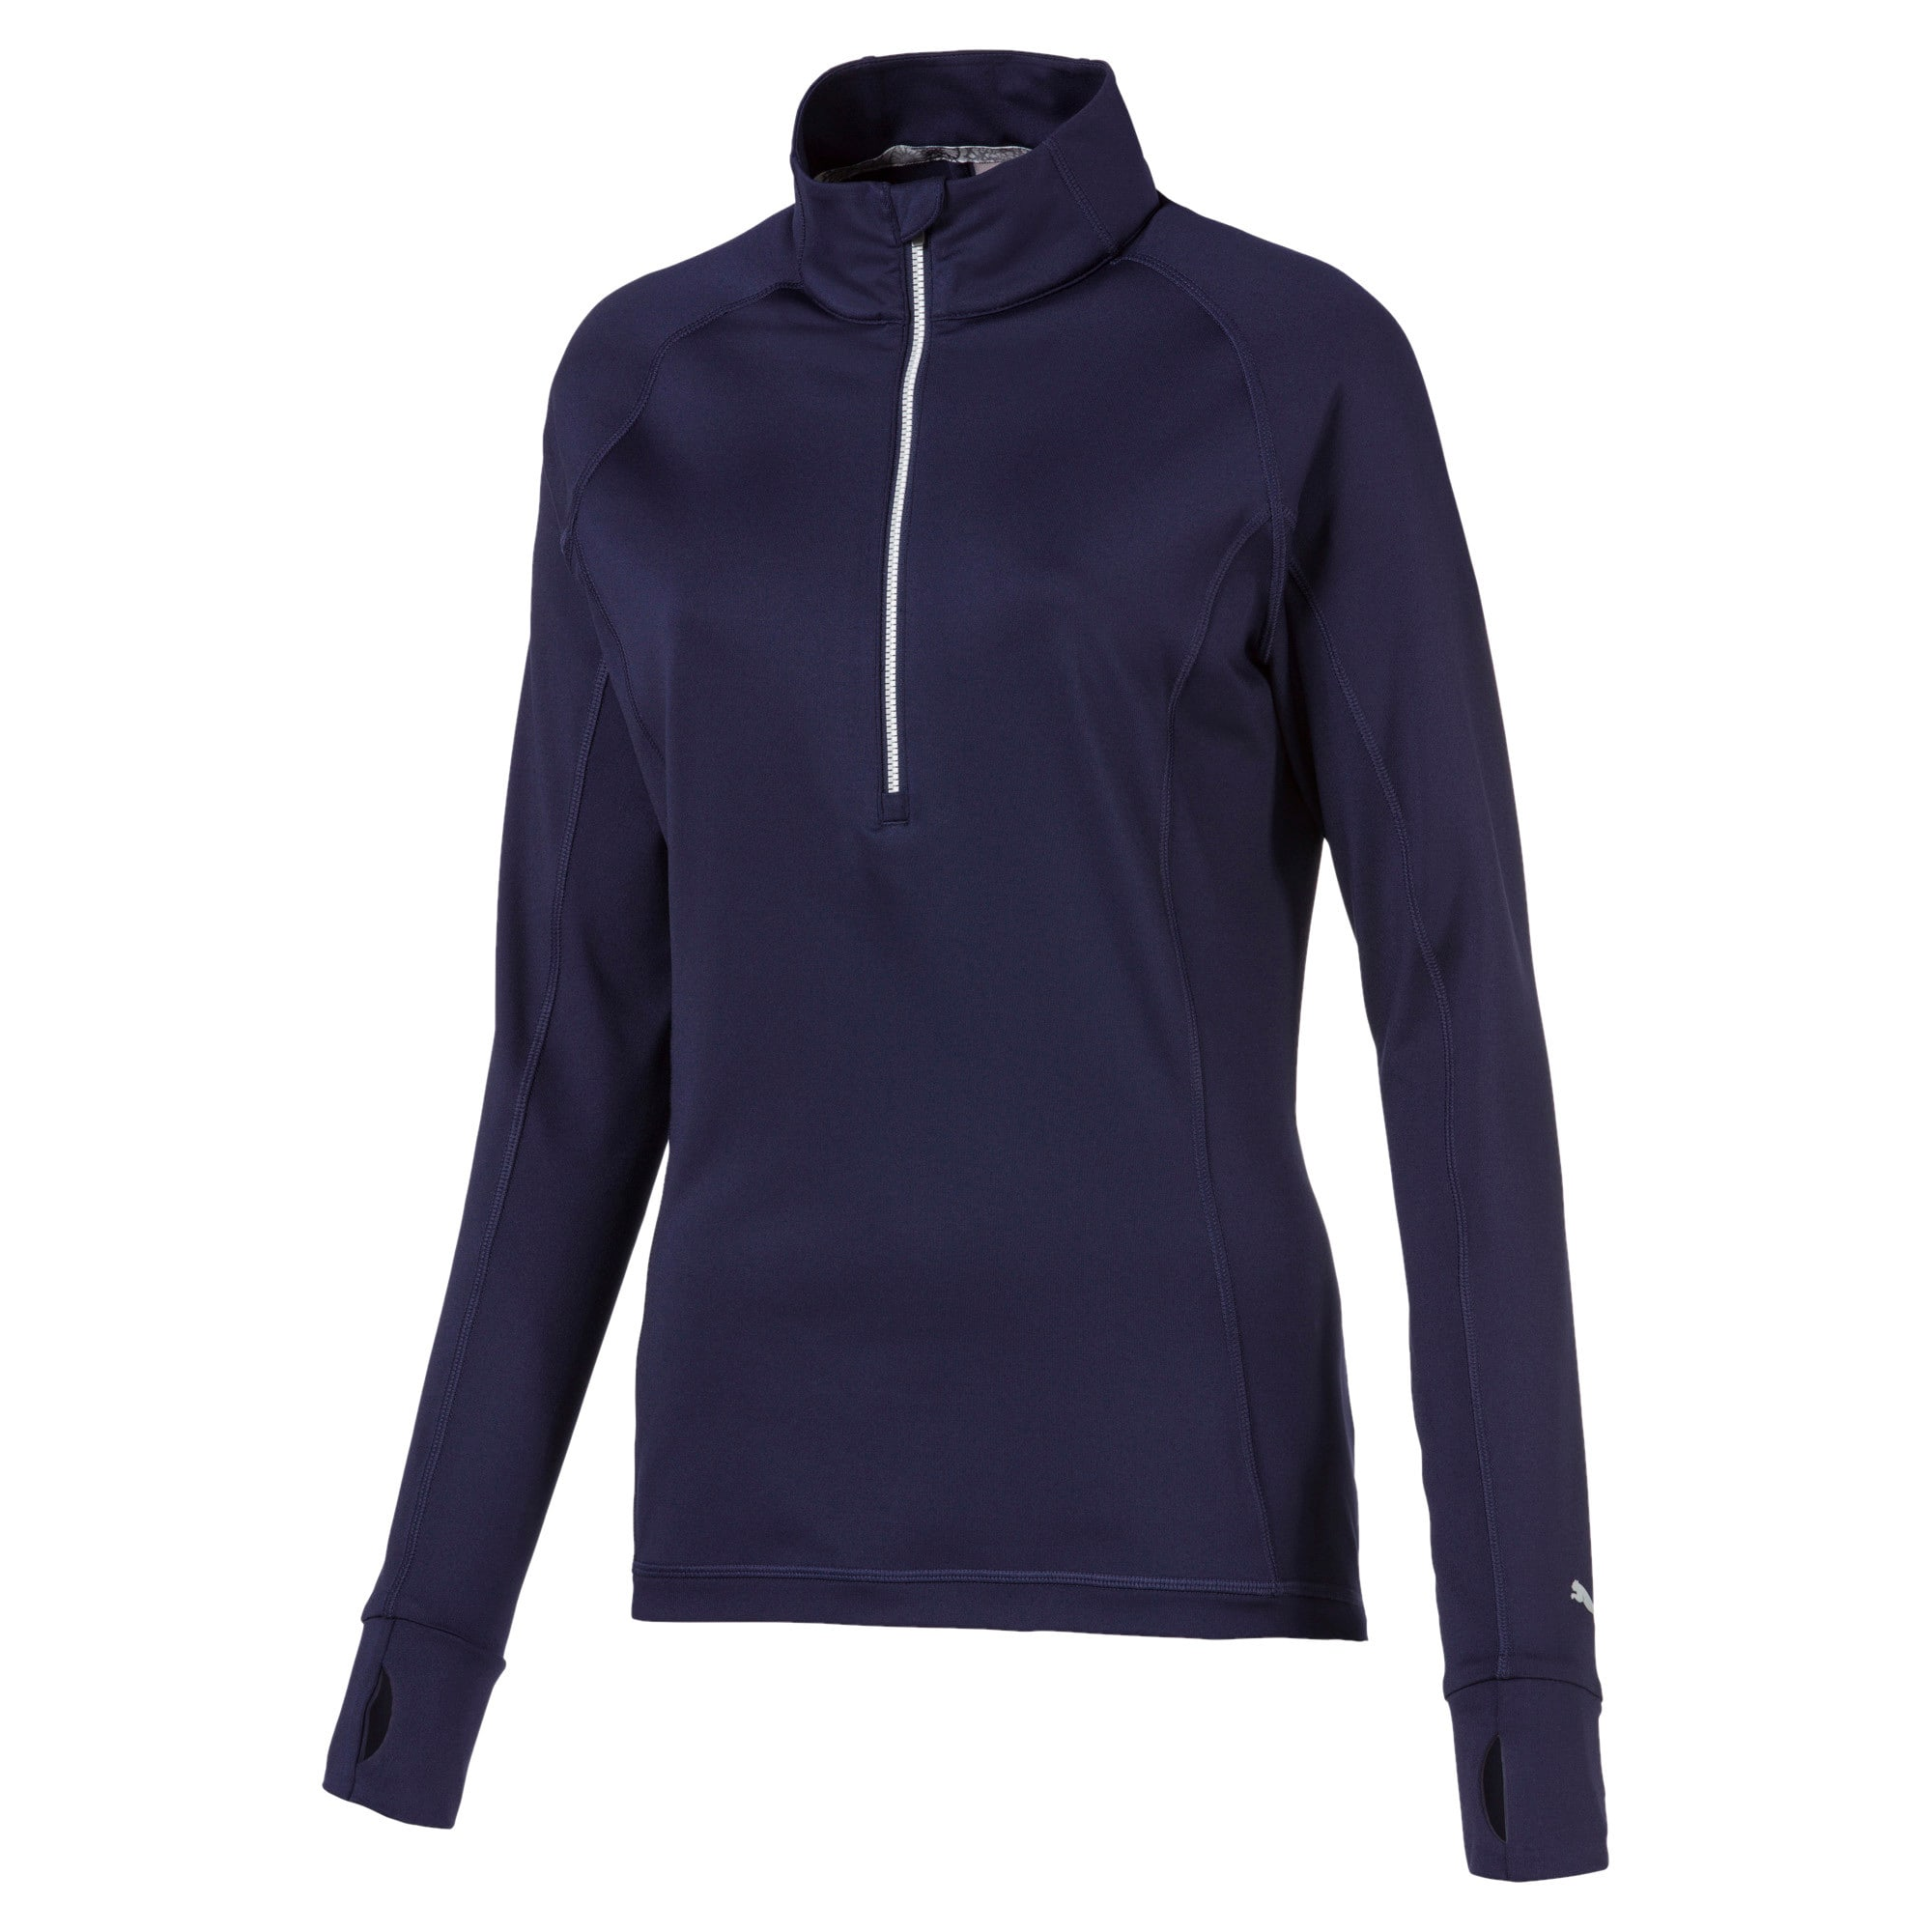 Thumbnail 1 of Rotation 1/4 Zip Women's Golf Pullover, Peacoat, medium